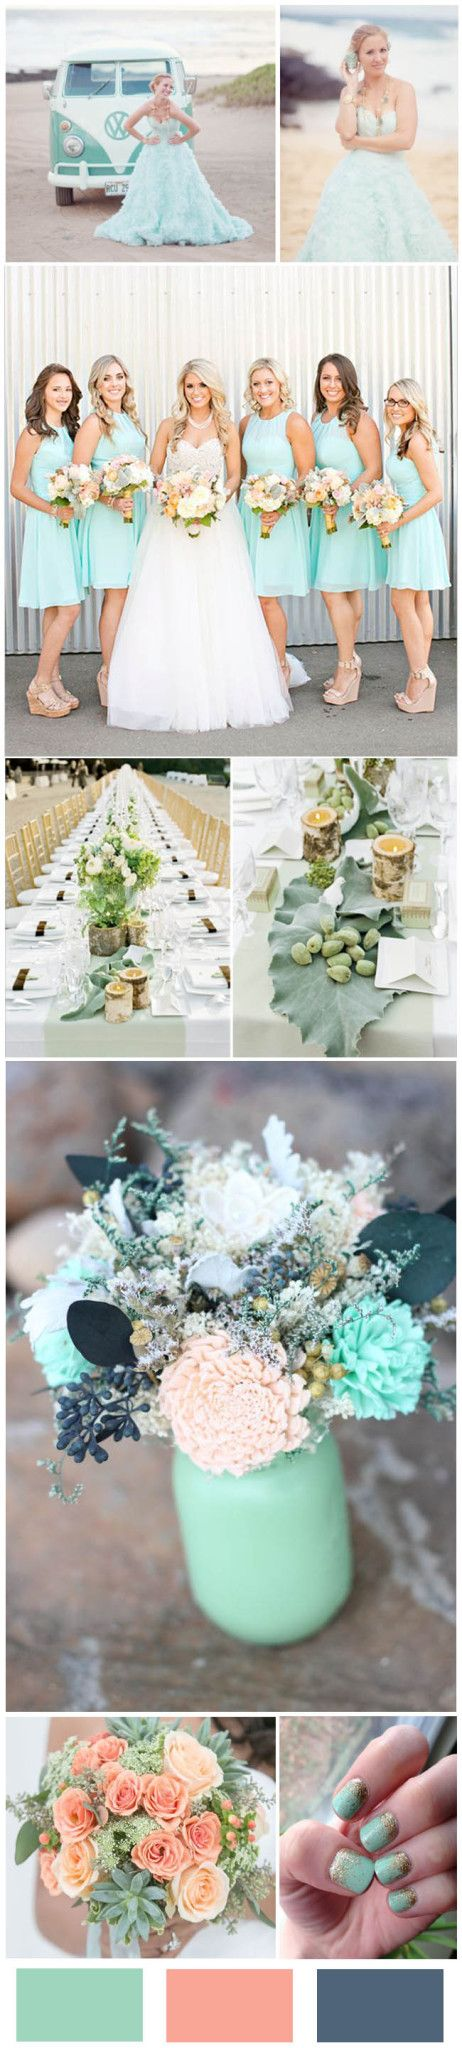 Wedding colors for a beach wedding   best Wedding images on Pinterest  Wedding color palettes Beach